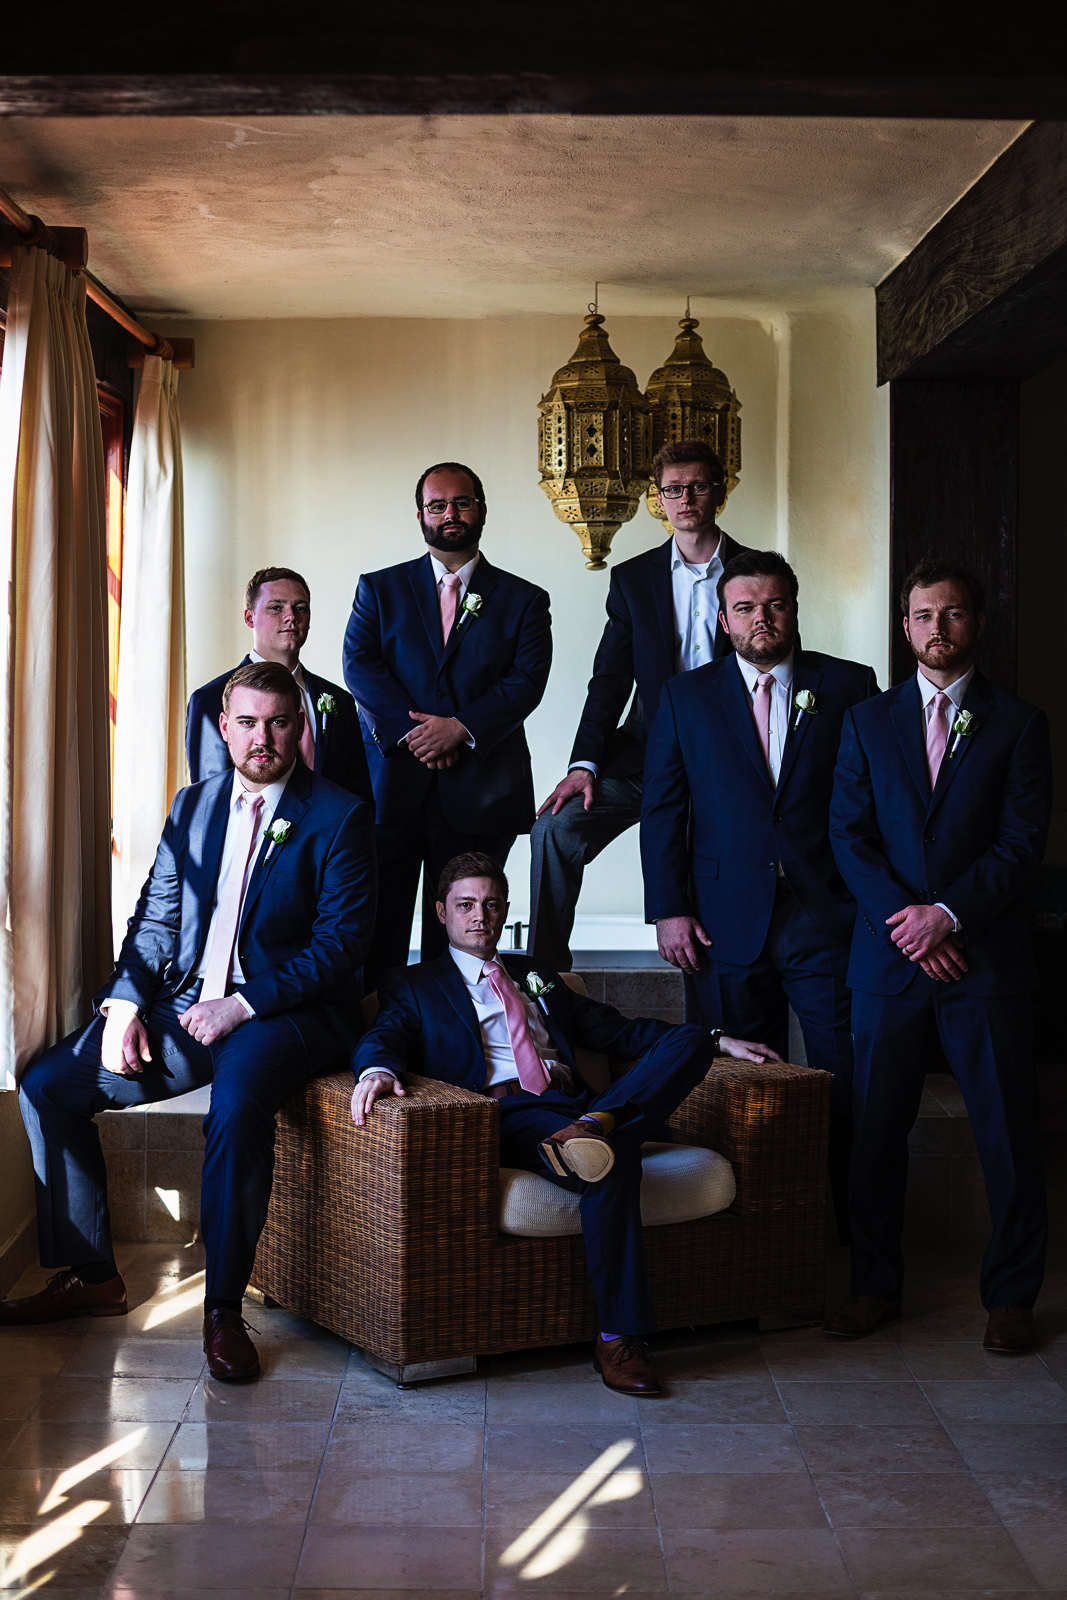 groom-groomsmen-portrait-playa-fiesta-wedding.jpg